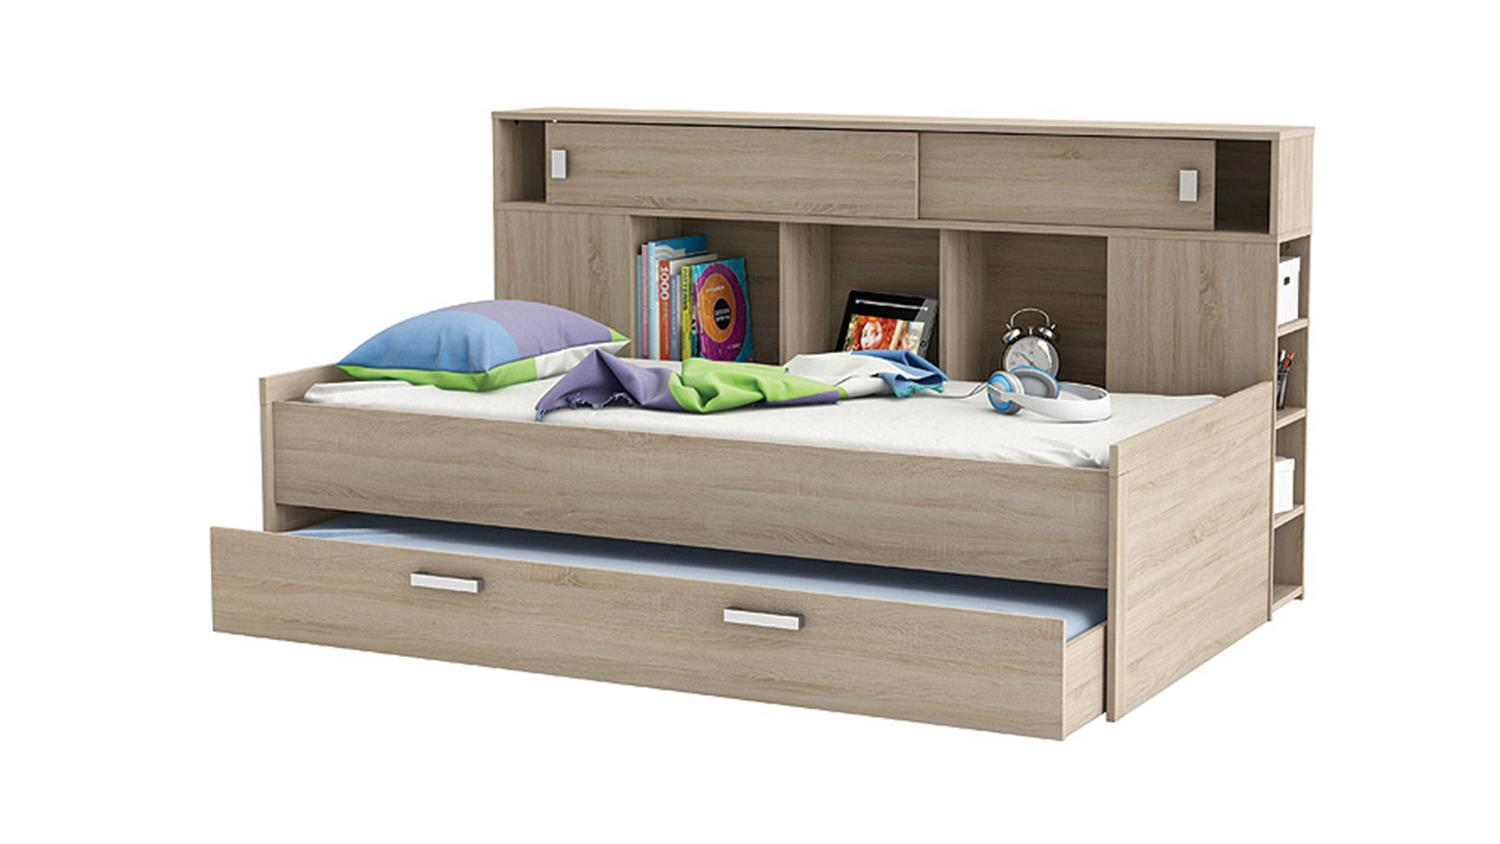 kinderbett mit bettkasten ihr traumhaus ideen. Black Bedroom Furniture Sets. Home Design Ideas